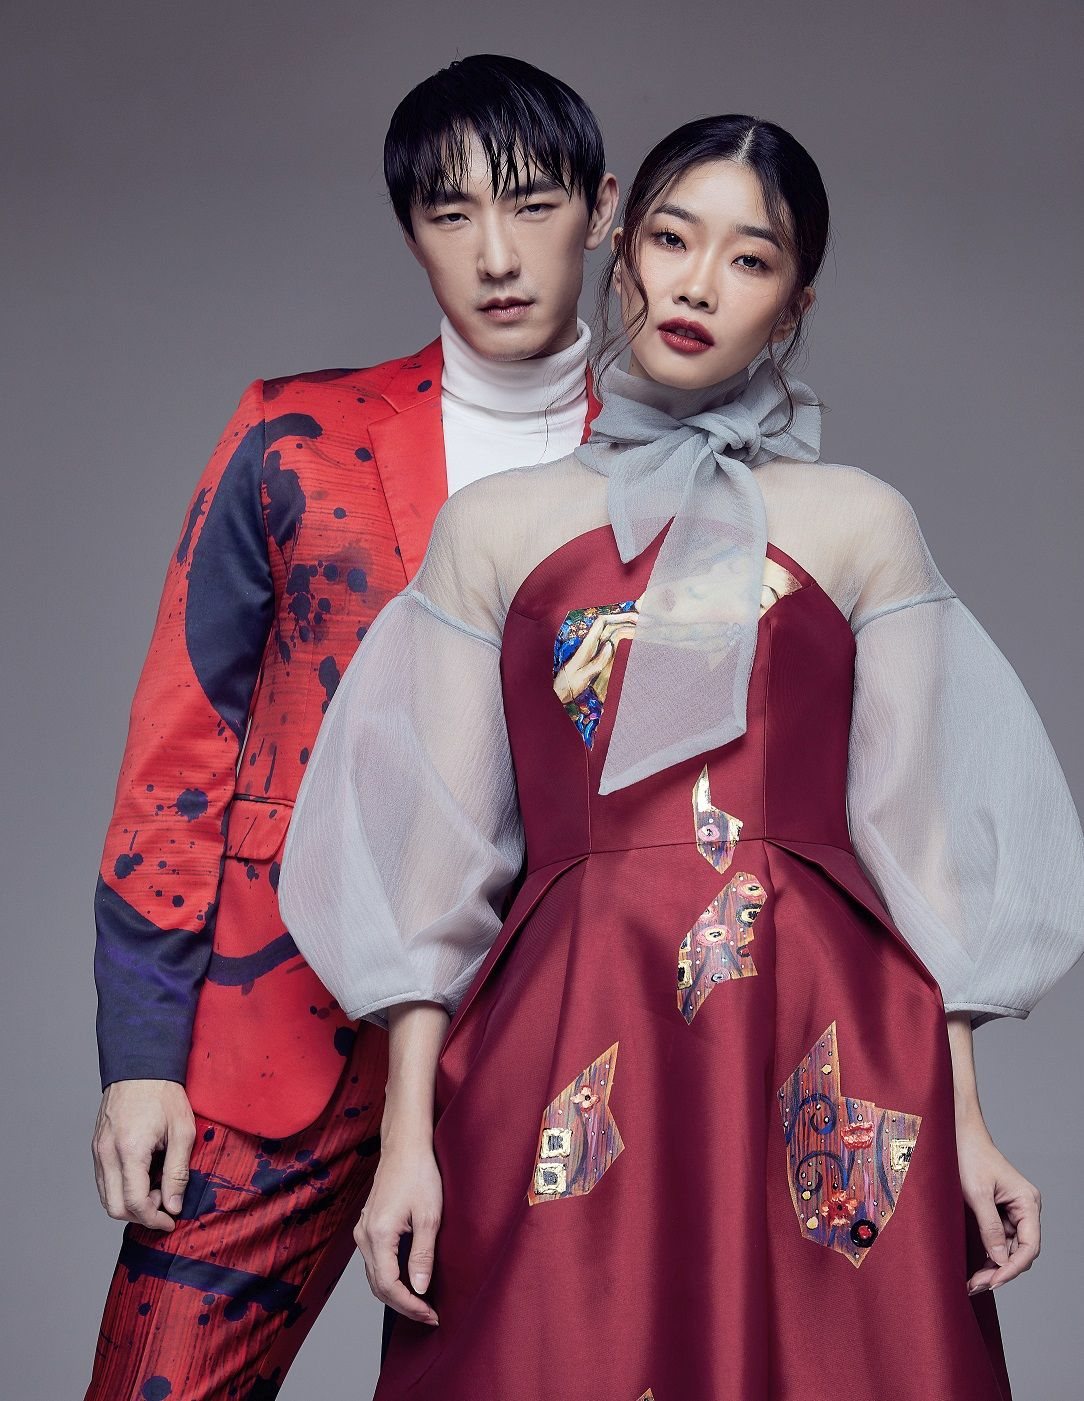 The Council of Asean Fashion Designers was established to help fashion designers from member nations thrive in the globally competitive industry. ― Picture courtesy of CAFD